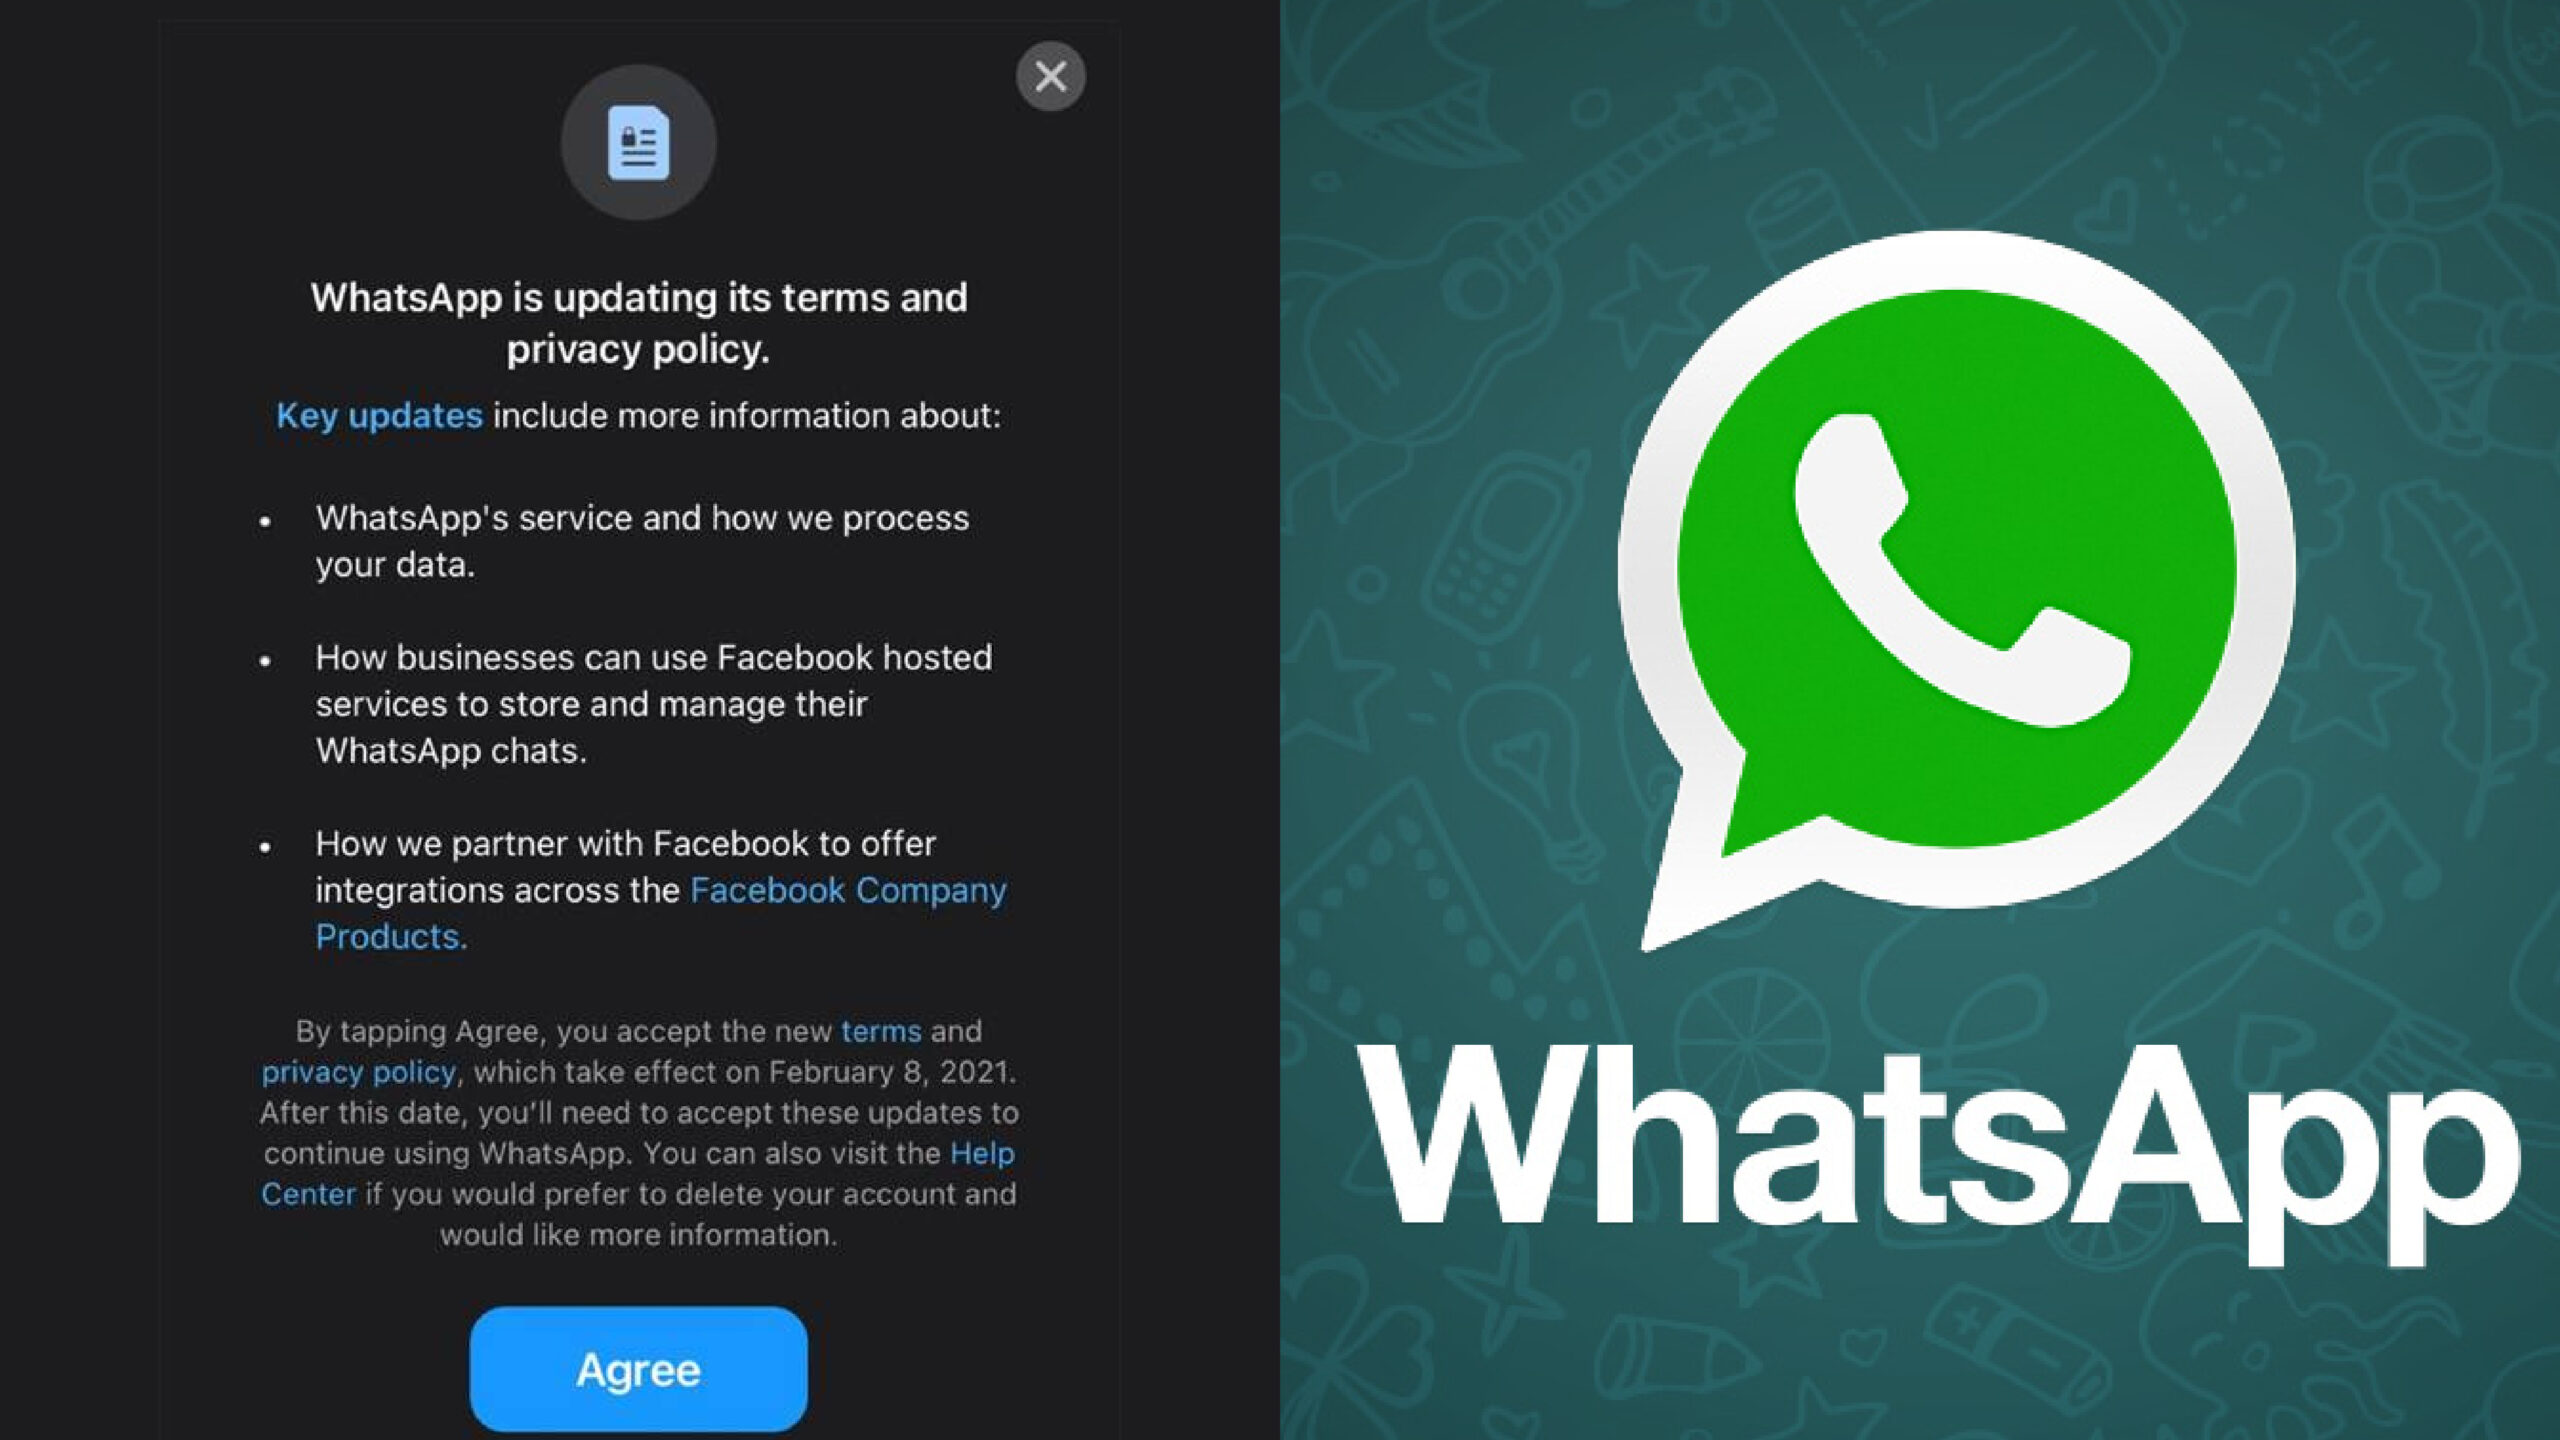 WhatsApp will limit features for users who don't accept new data‑sharing rules